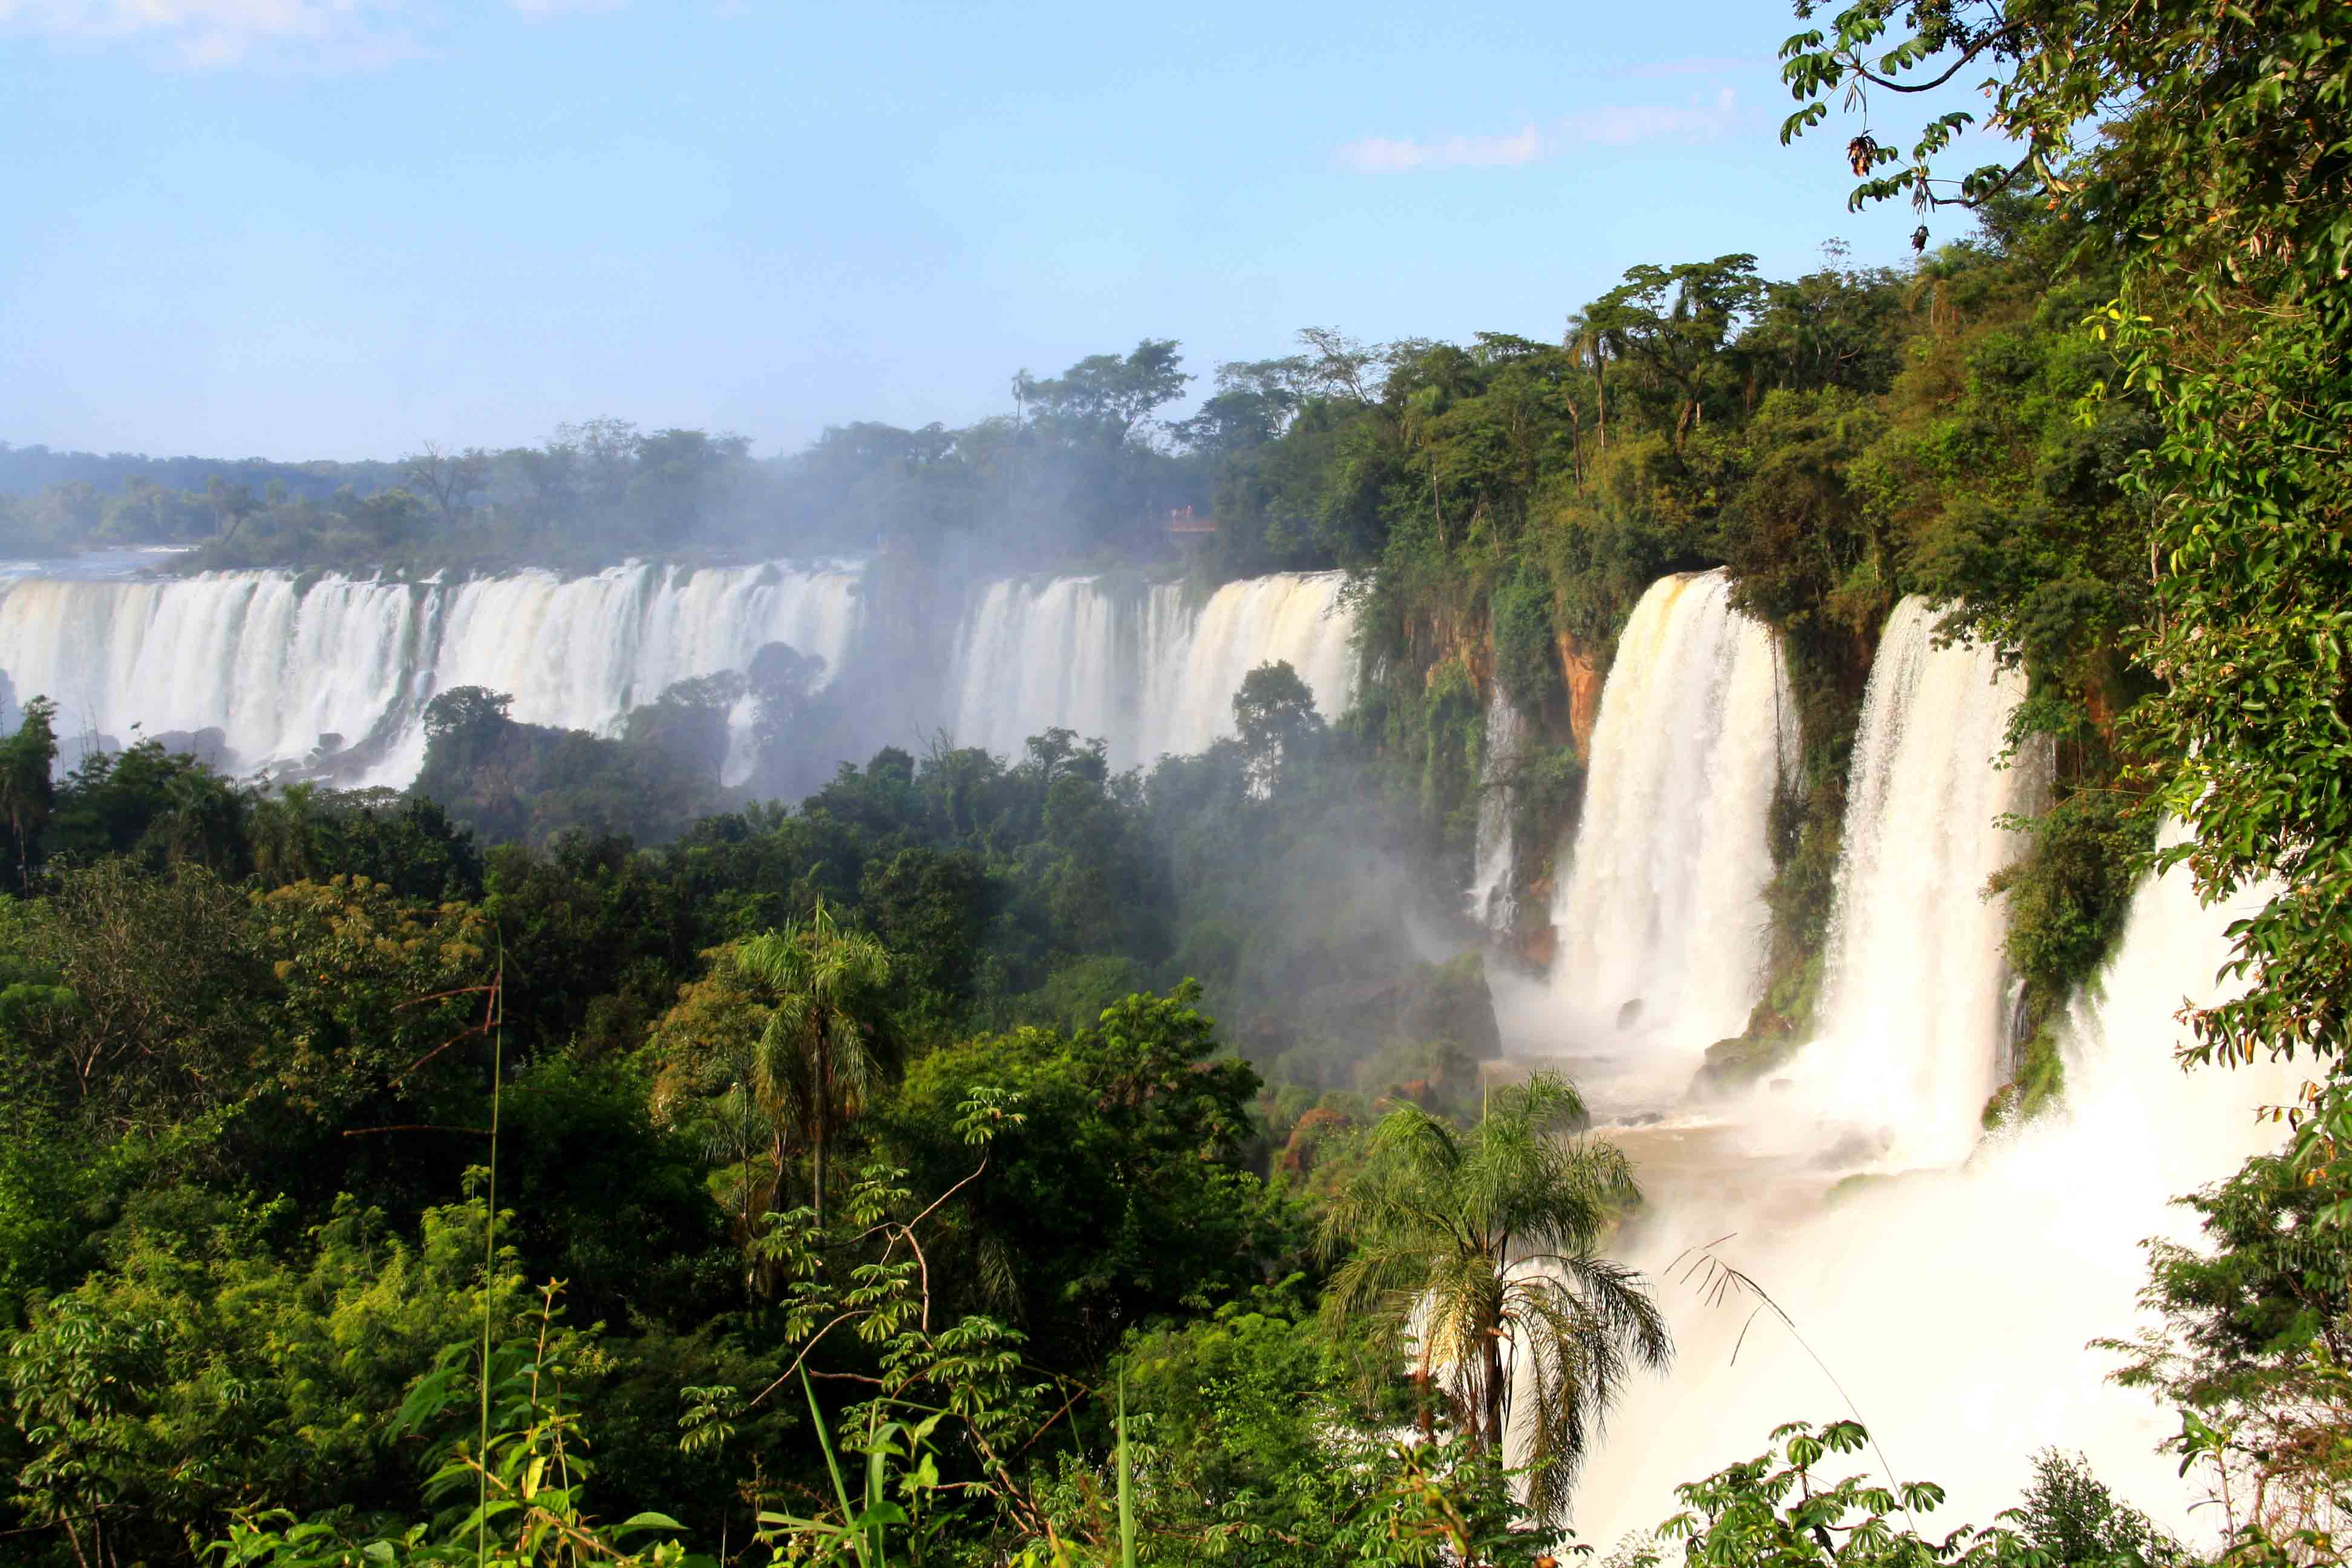 jungle_forest_iguazu_falls